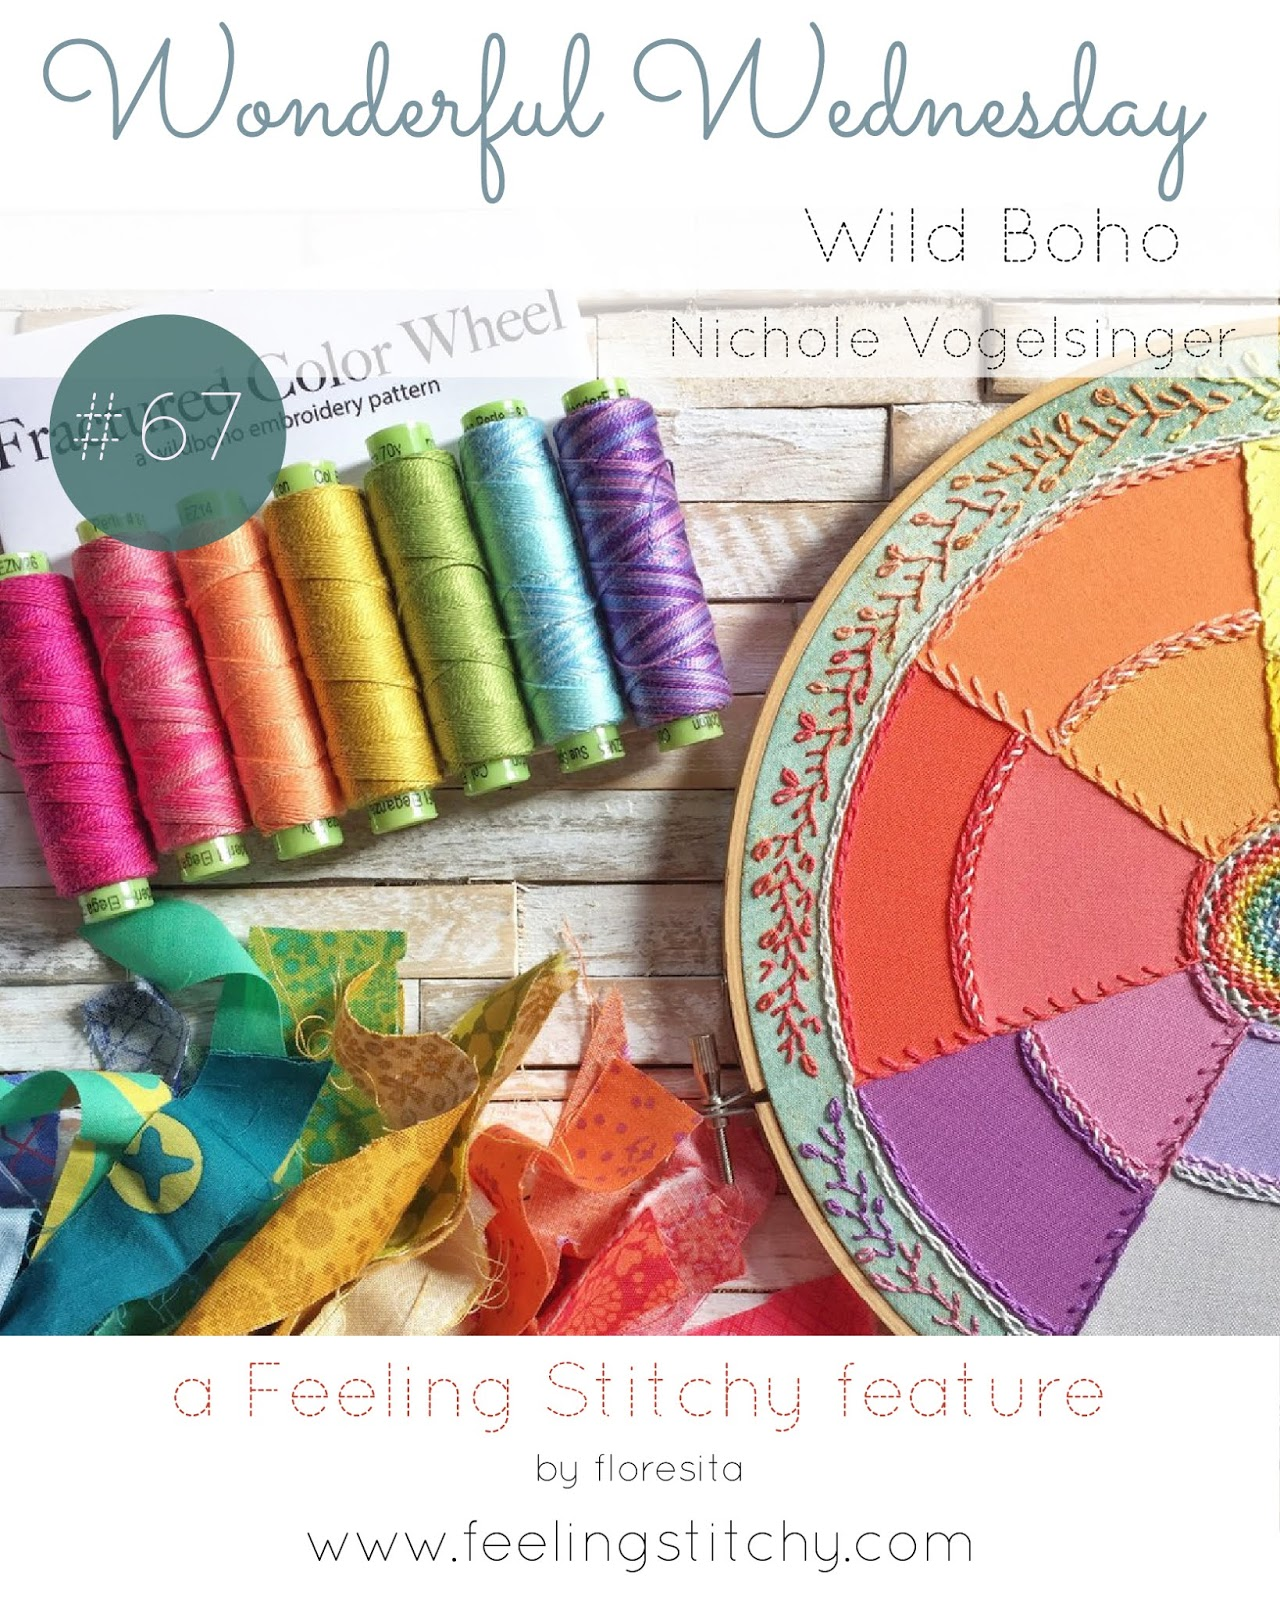 Wonderful Wednesday 67 Wild Boho Nichole Vogelsinger as featured by floresita on Feeling Stitchy